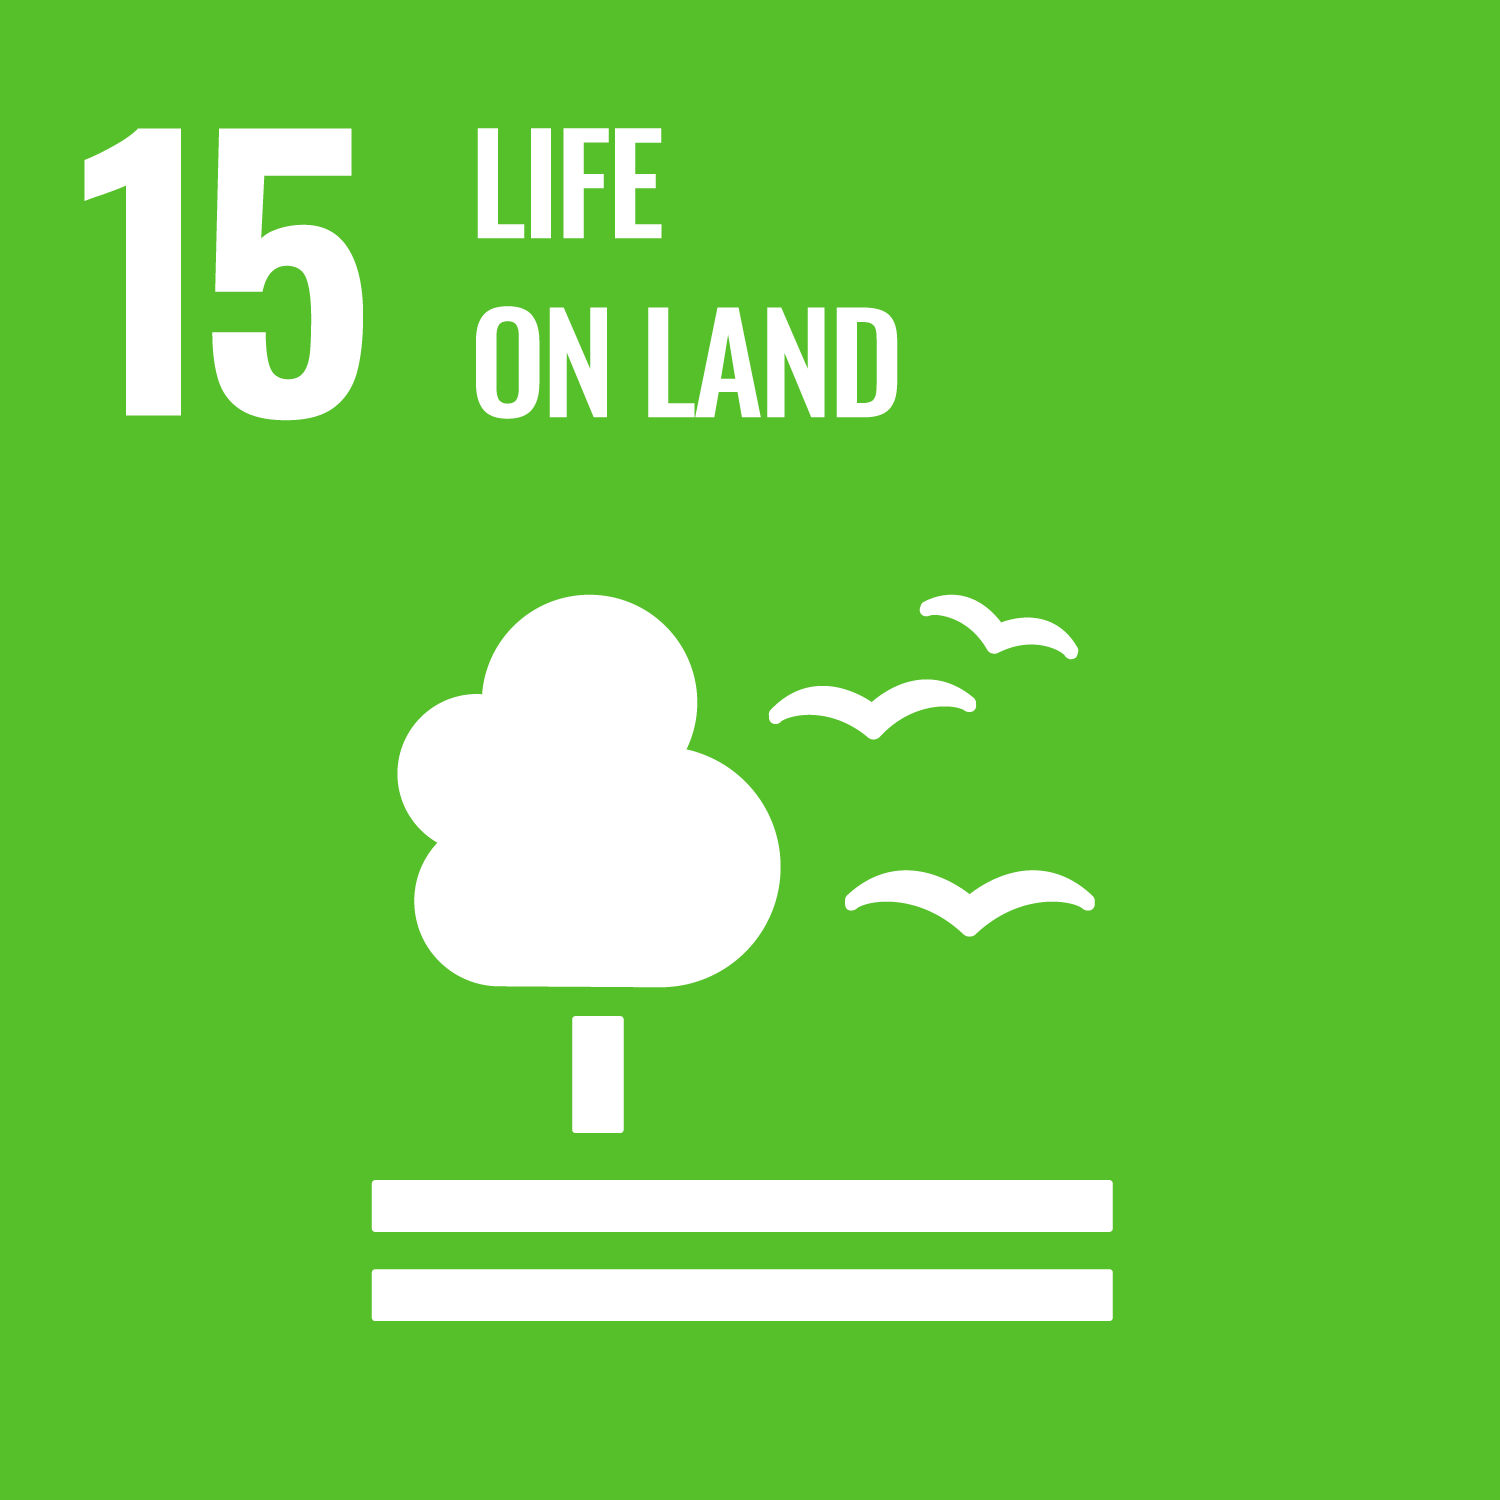 SDG 15 Life on Land logo